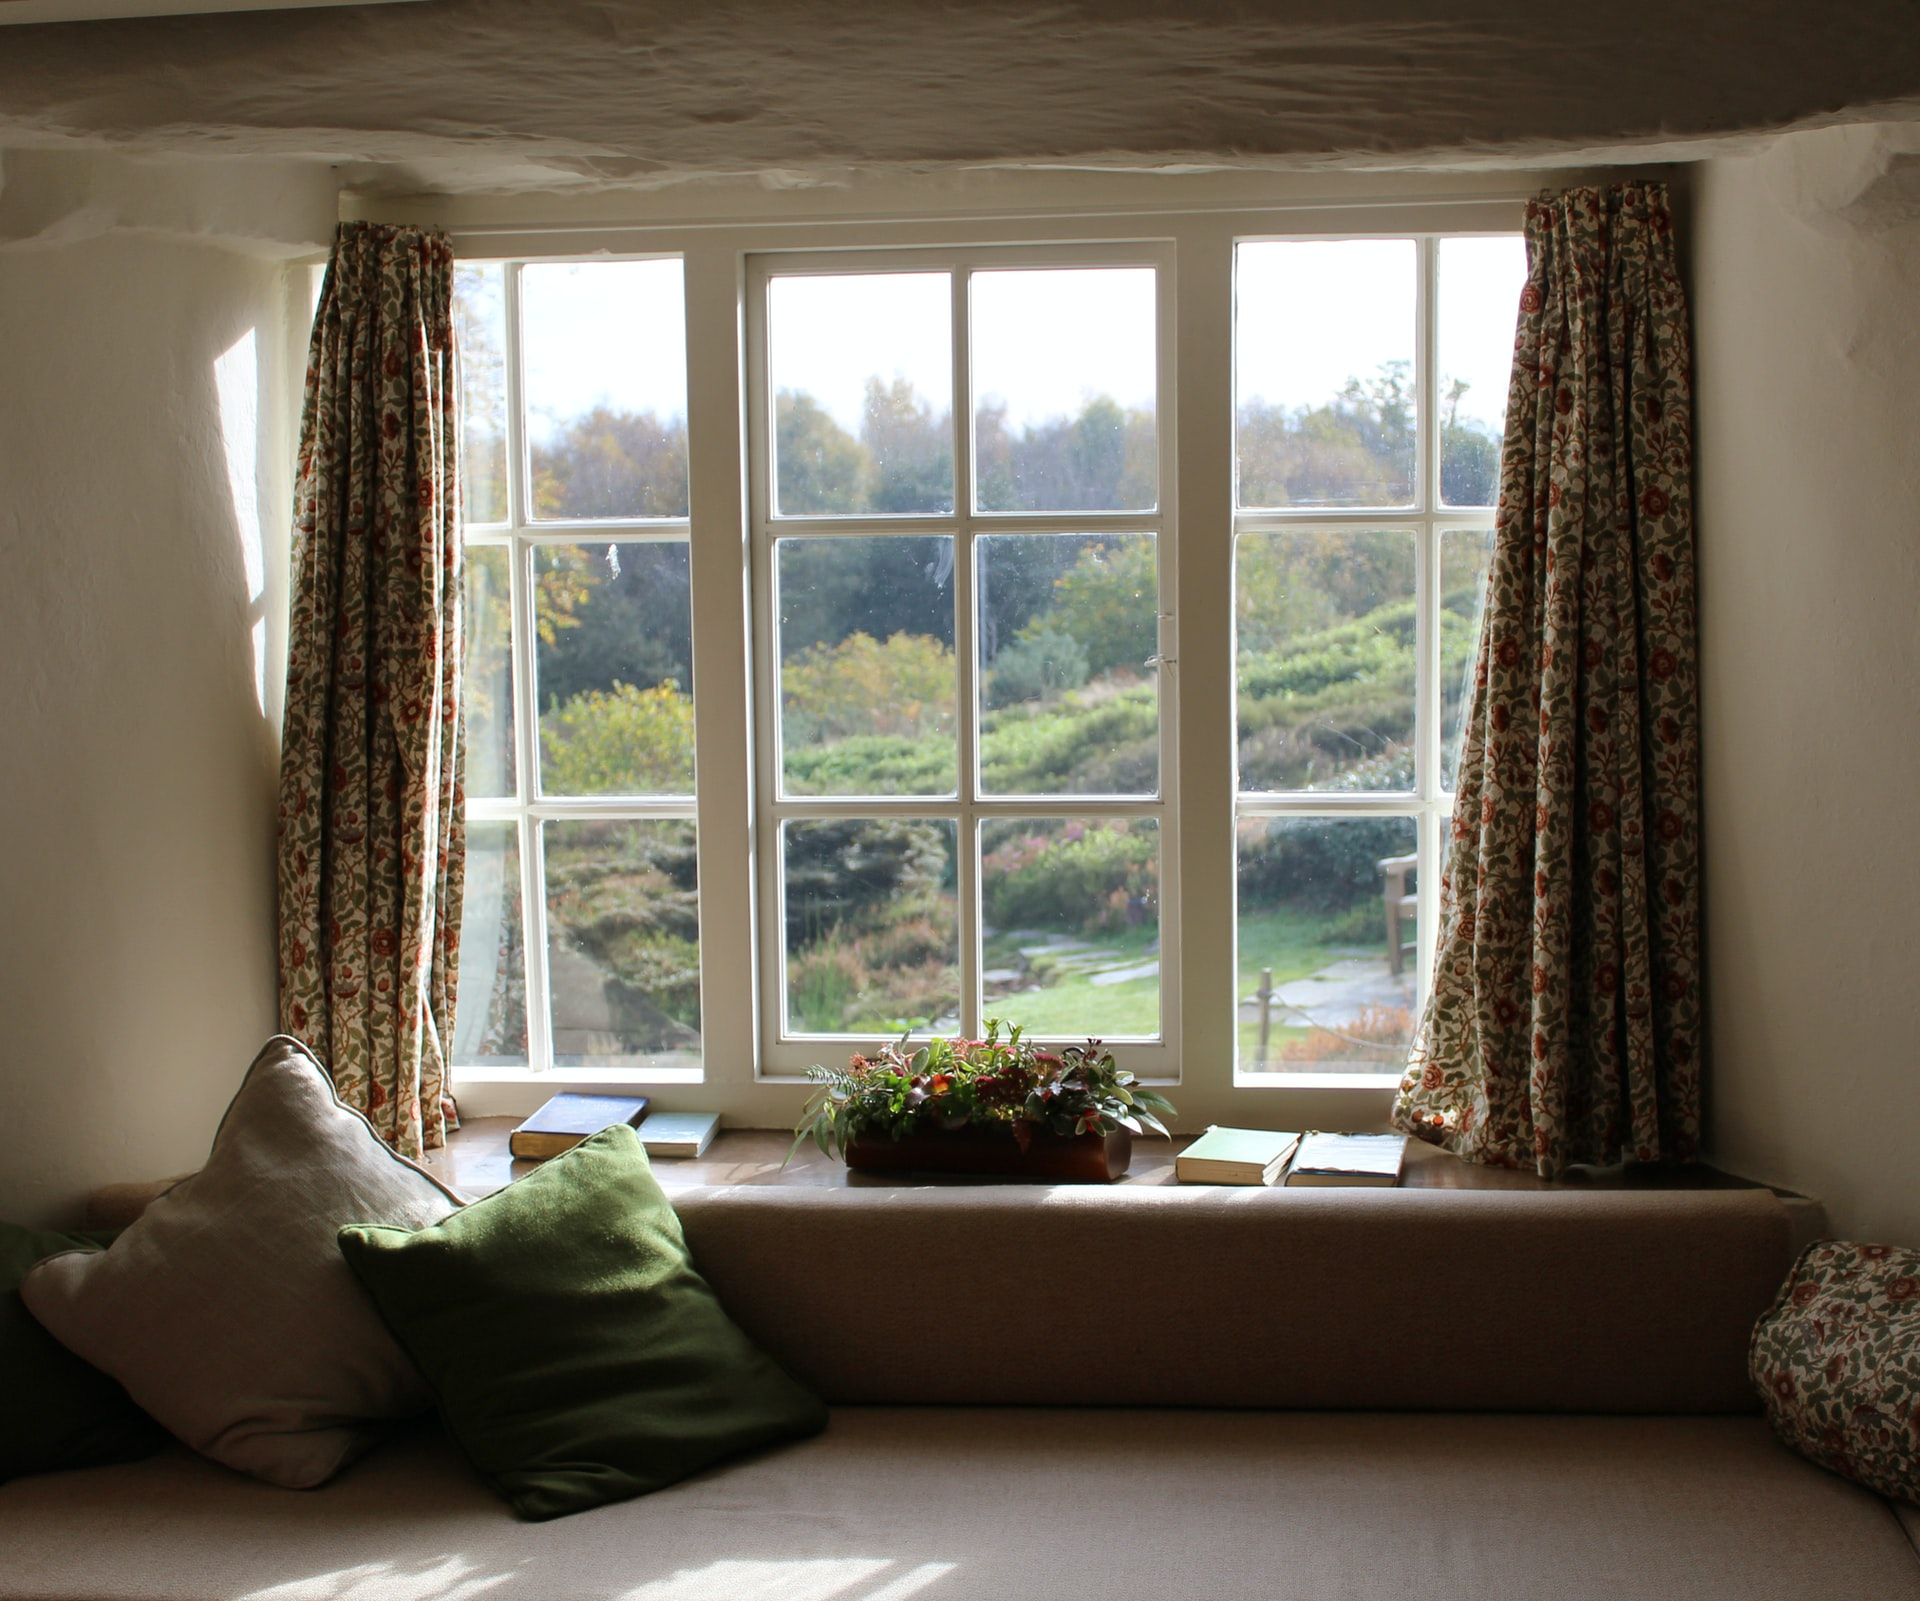 Useful Tips To Pick The Right Window Company